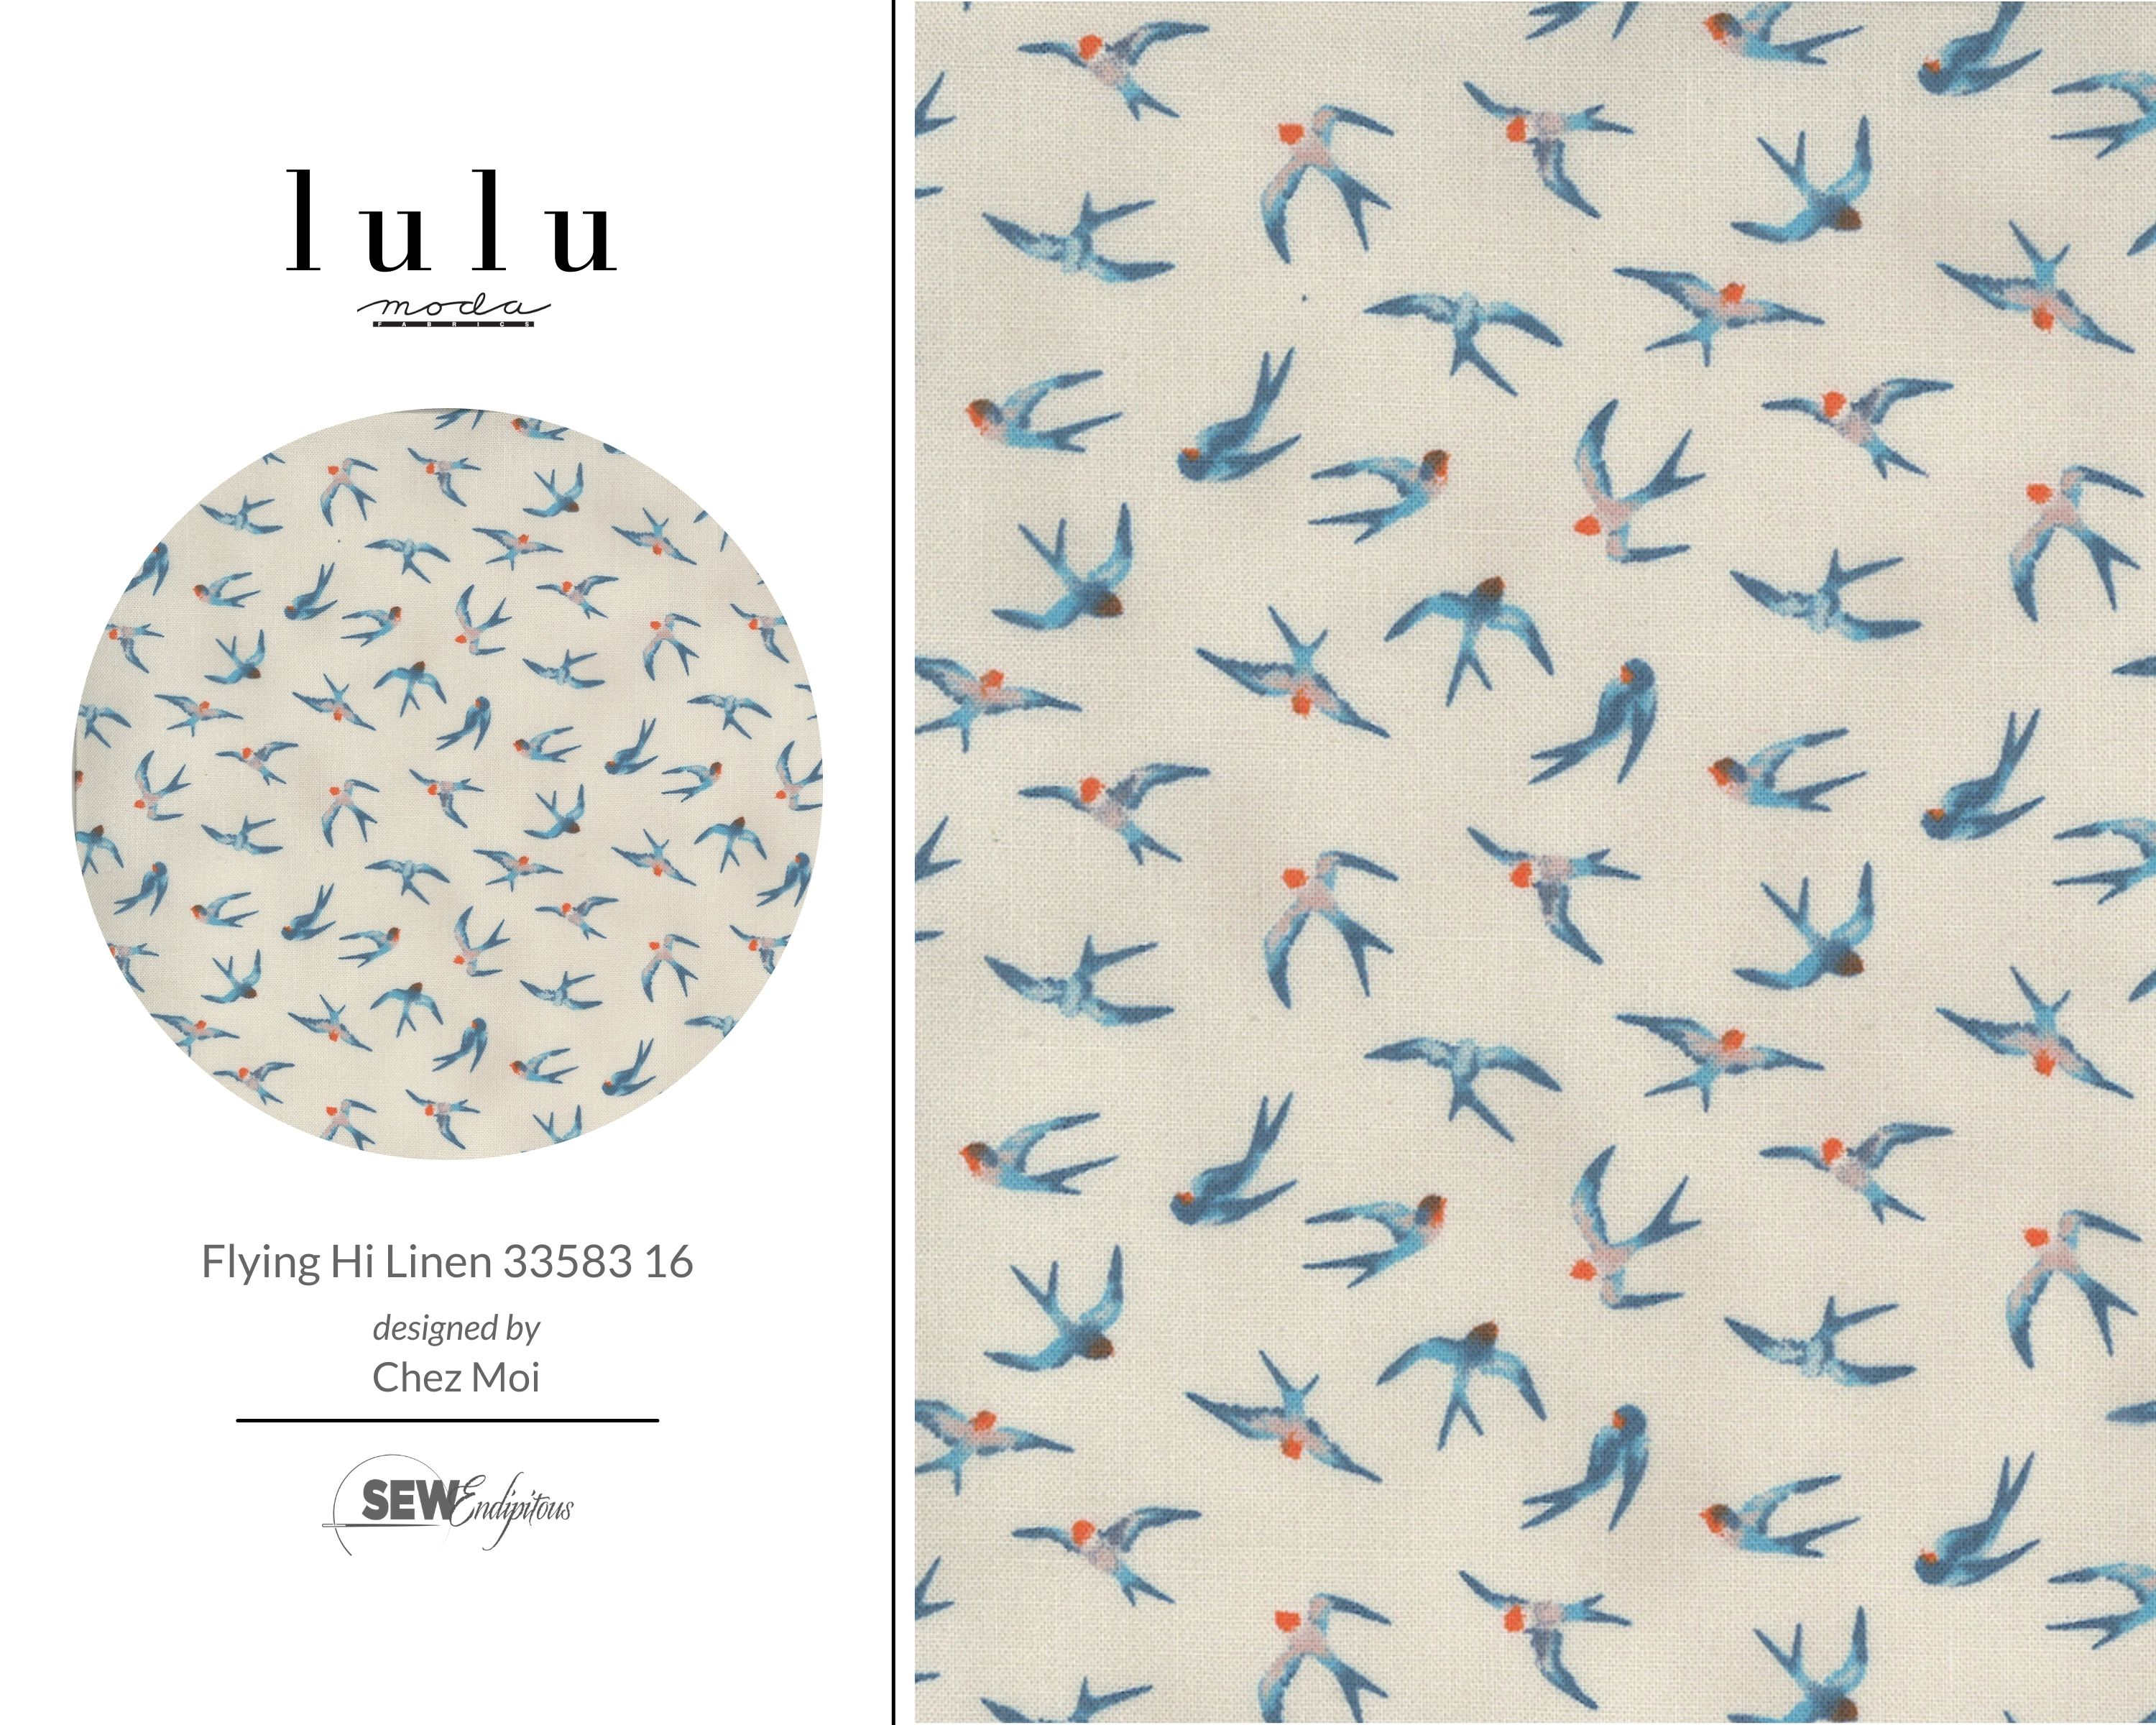 Lulu - Flying Hi Linen 33583 16